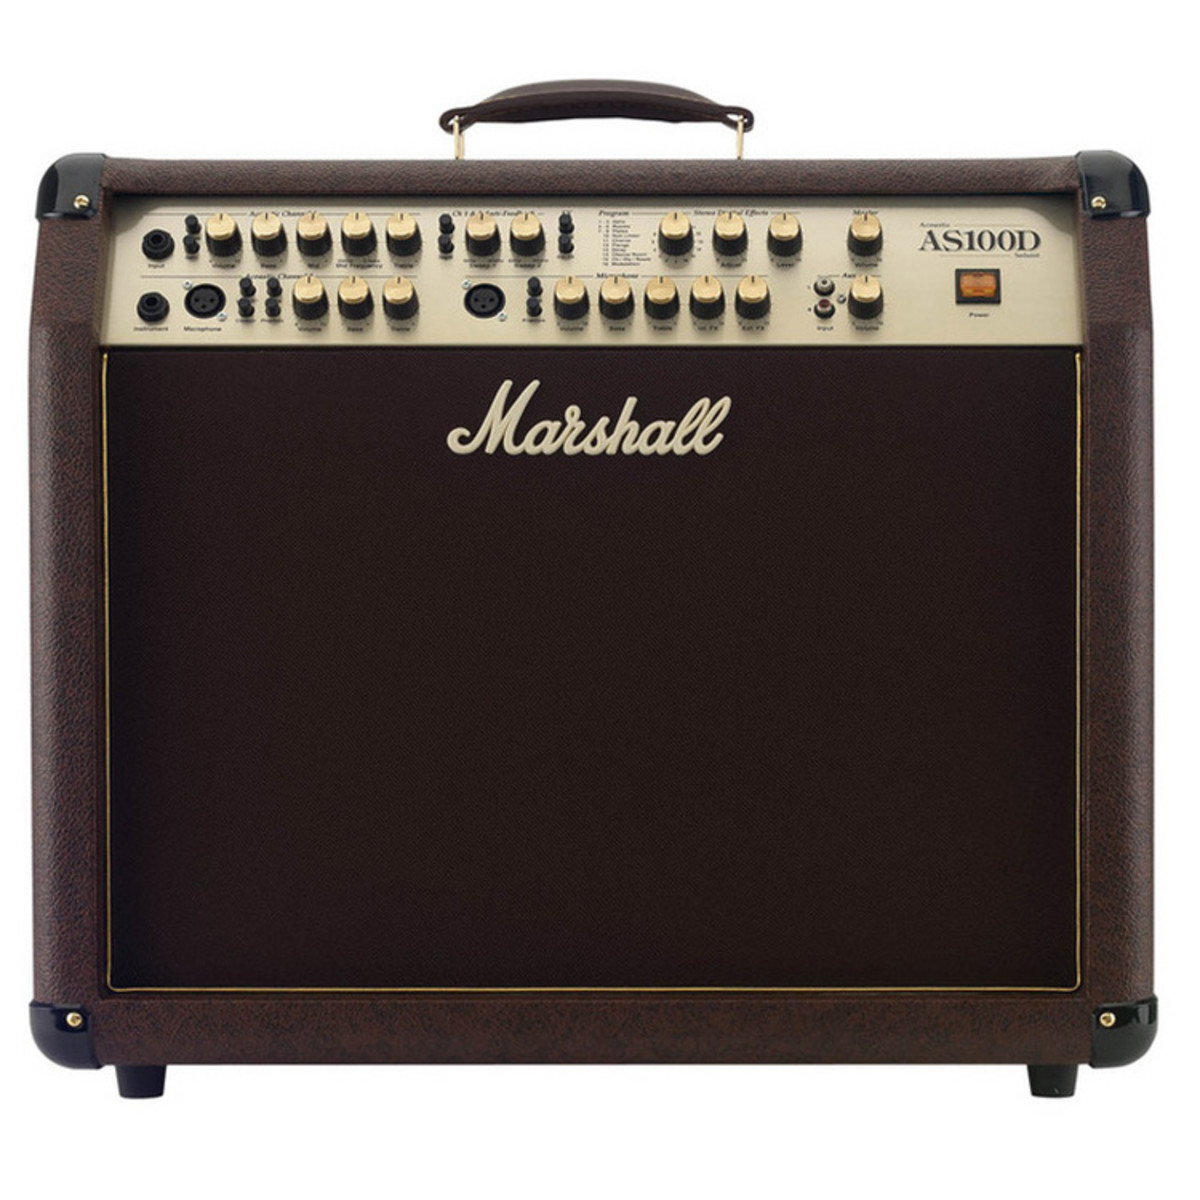 marshall as100d stereo acoustic combo with digital fx at gear4music. Black Bedroom Furniture Sets. Home Design Ideas